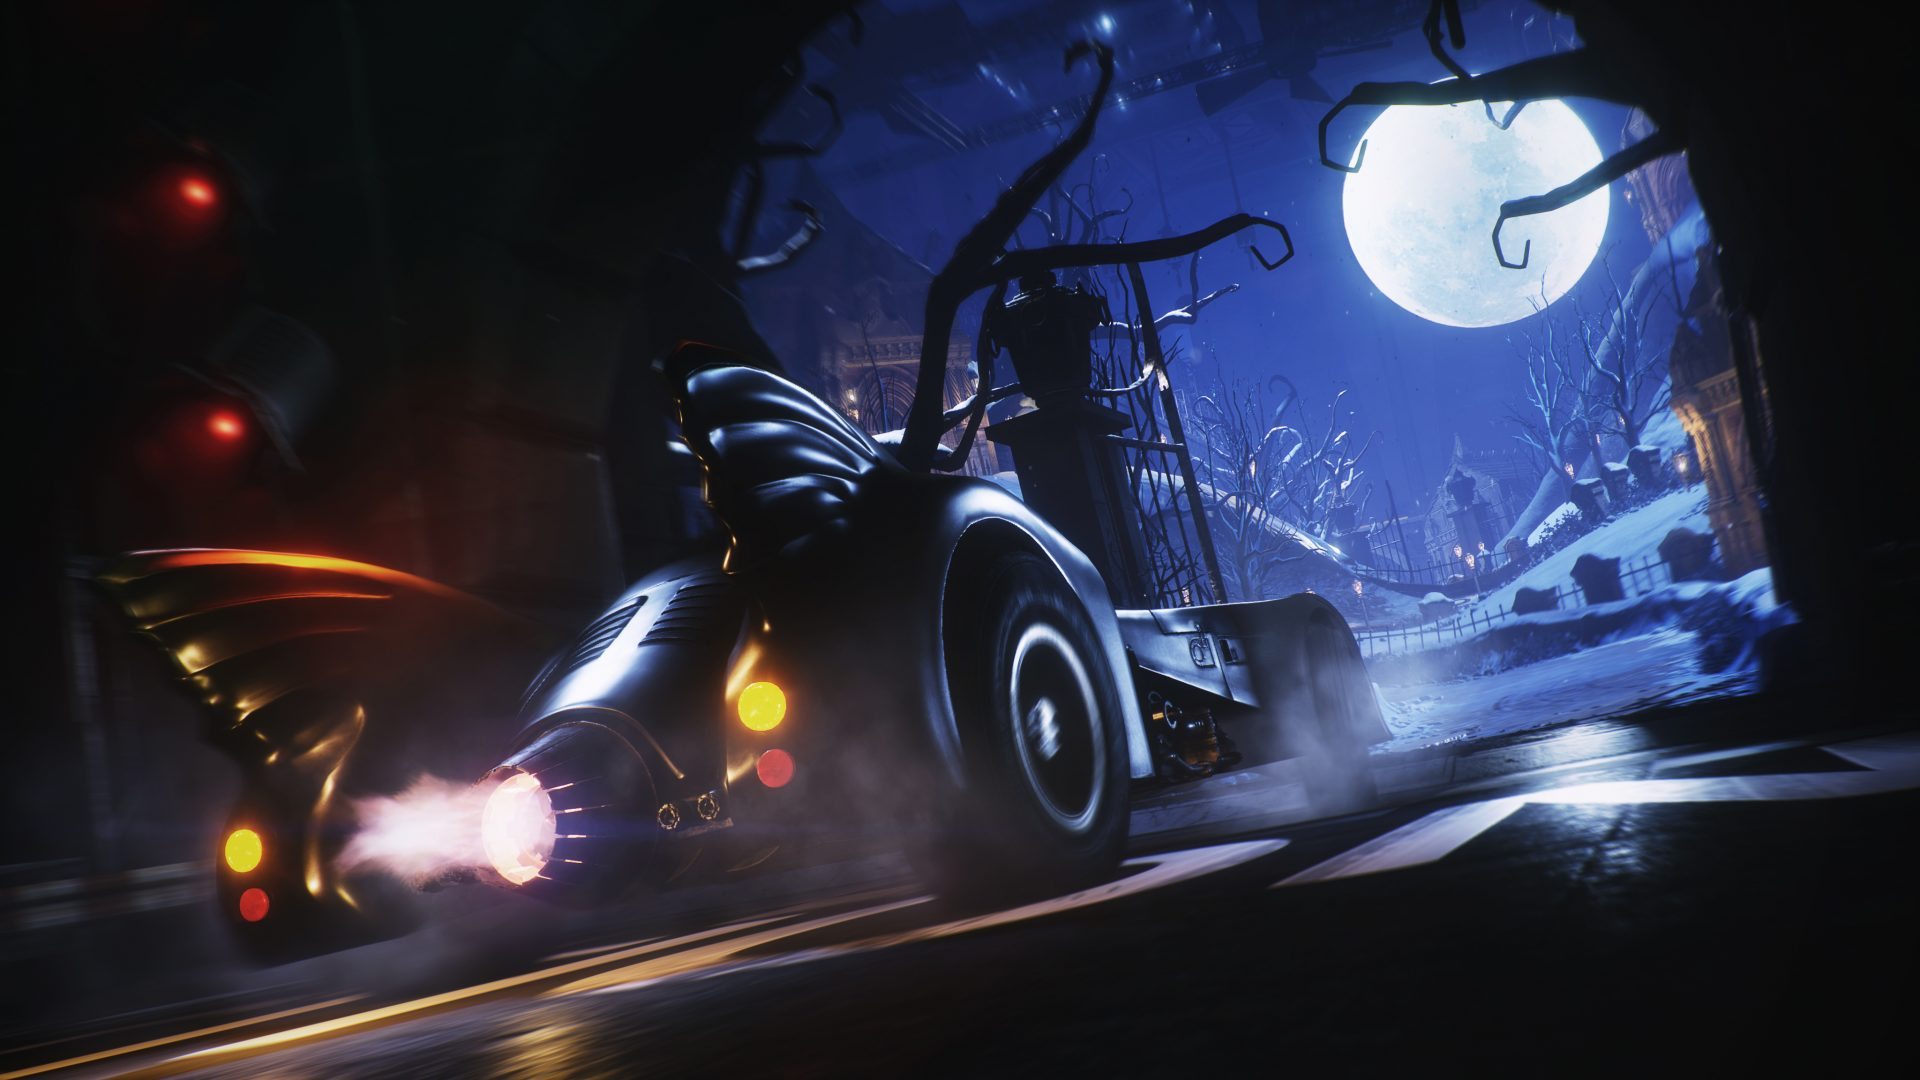 Drive the 1989 Batmobile In Batman Arkham Knight